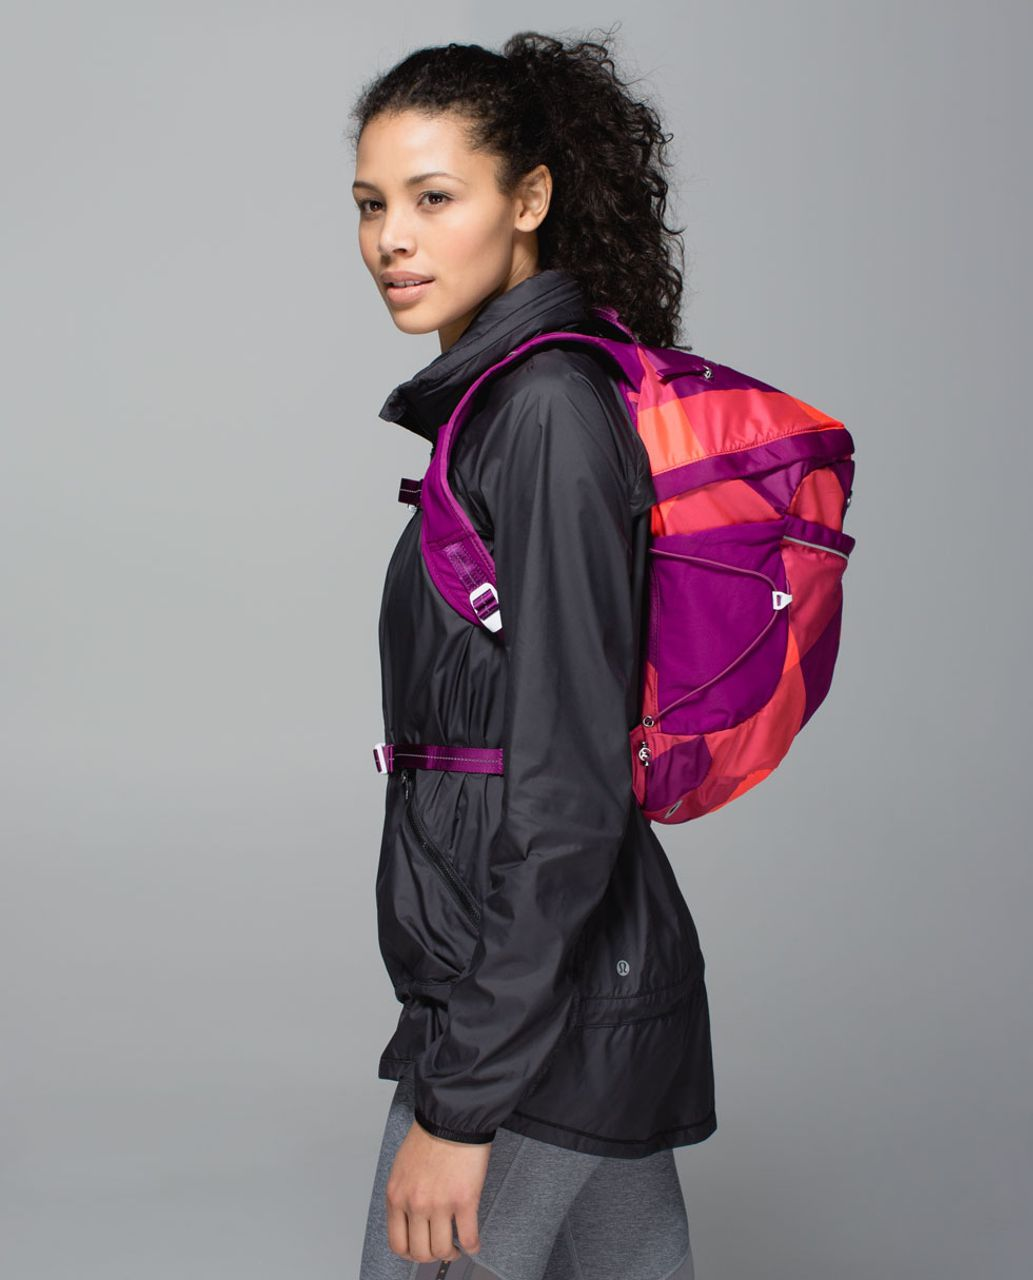 Lululemon Run All Day Backpack - Oversized Buffalo Check Electric Coral Regal Plum / Regal Plum